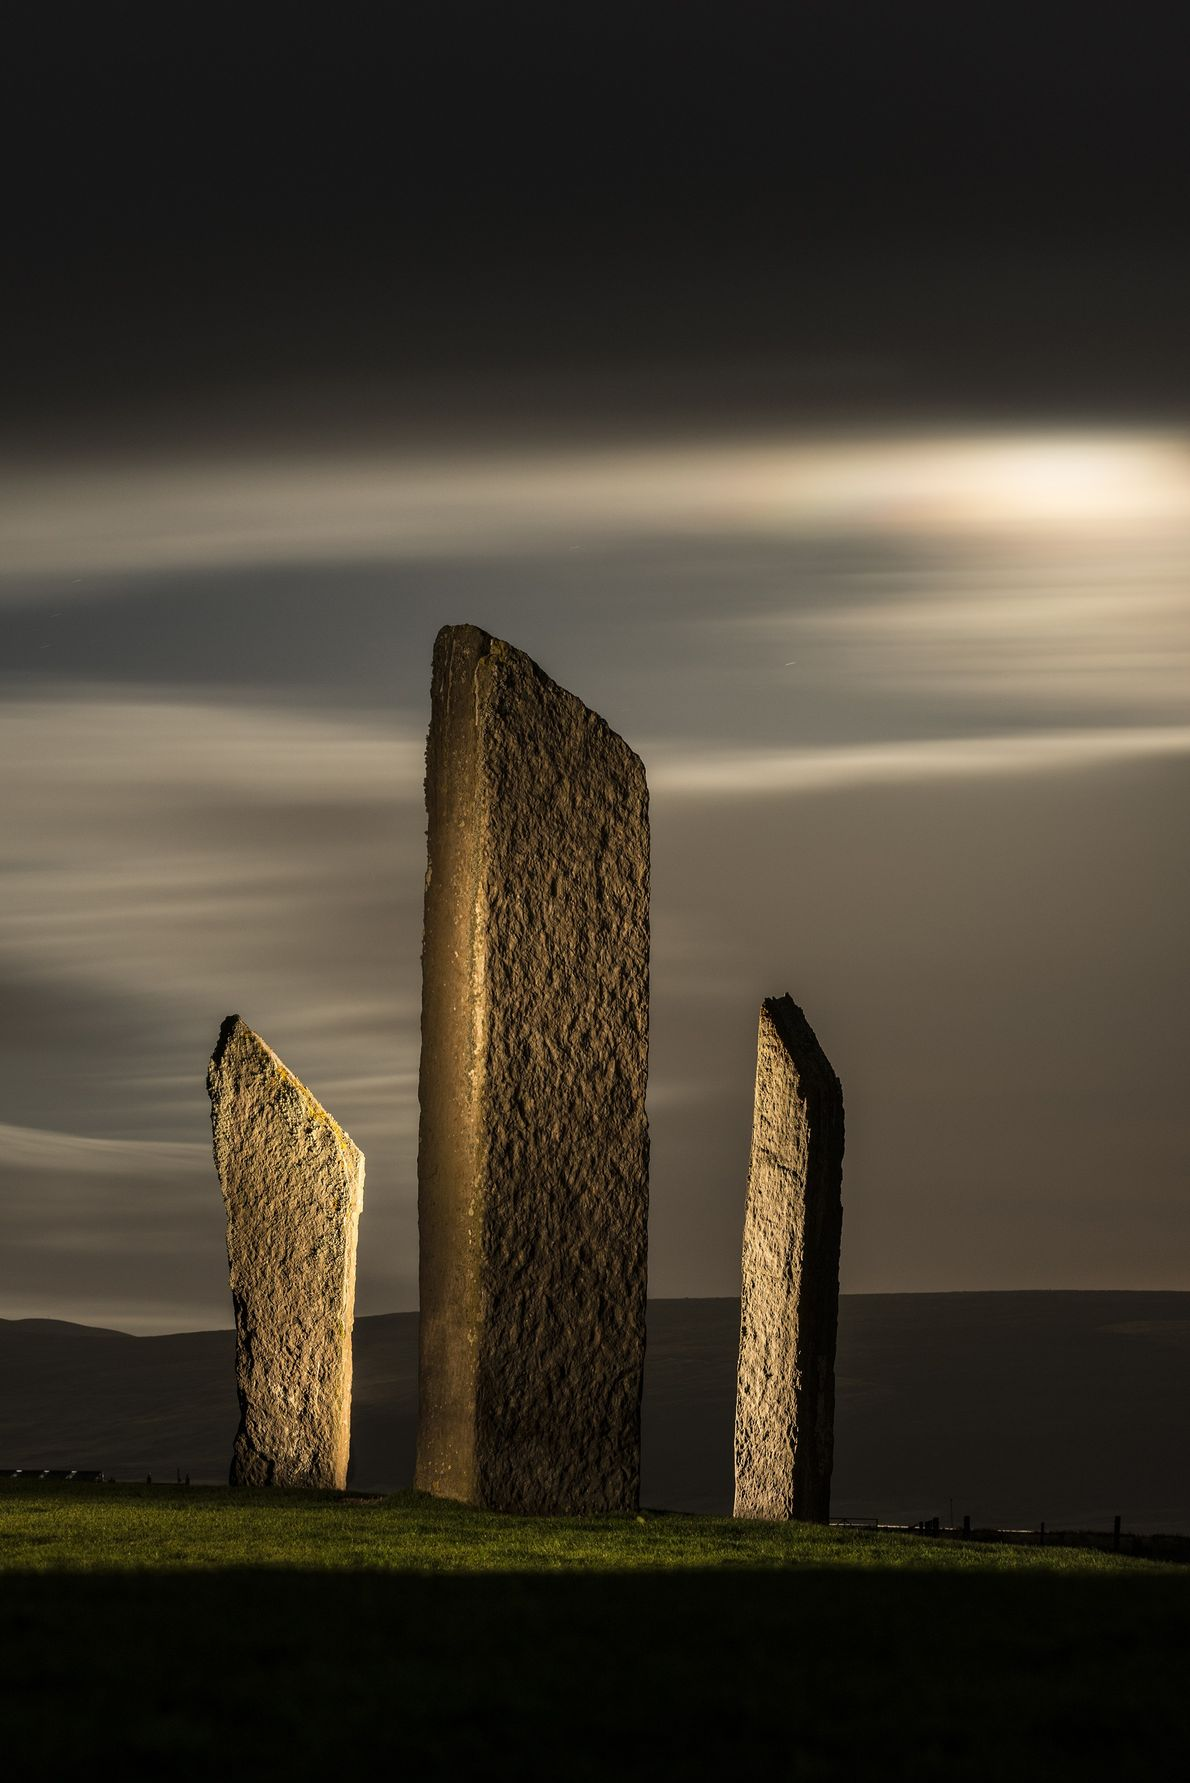 The Stones of Stenness is a Neolithic monument in Orkney, Scotland dating from around 3000 BC. …